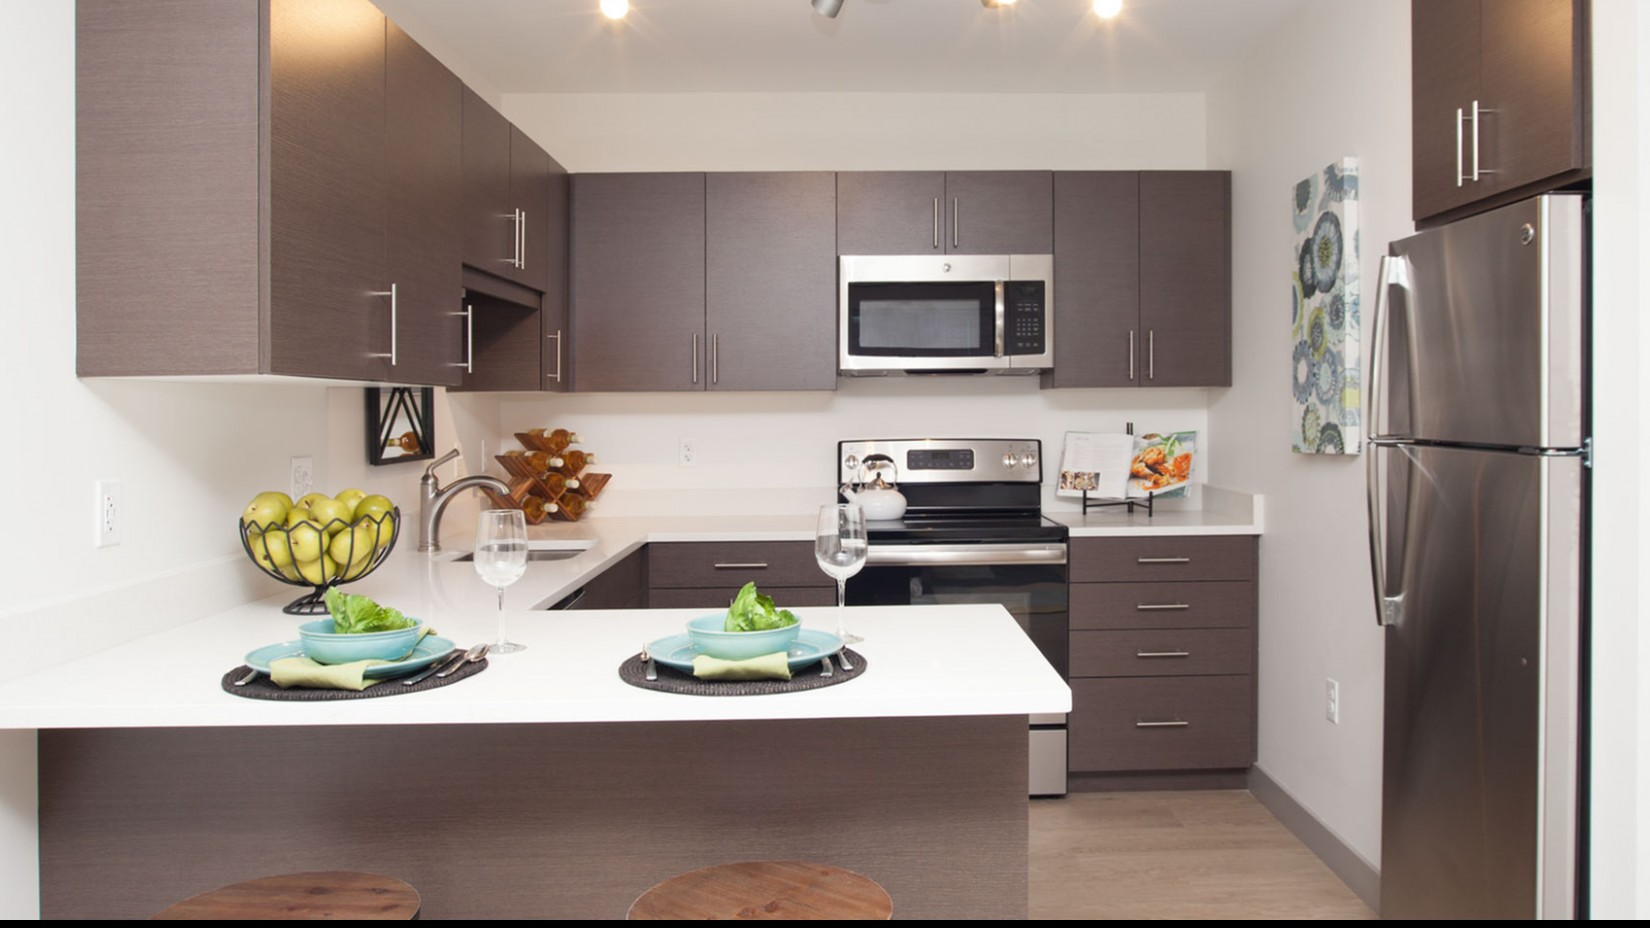 2 Residents at Dolben | Luxury Apartments in Beverly MA